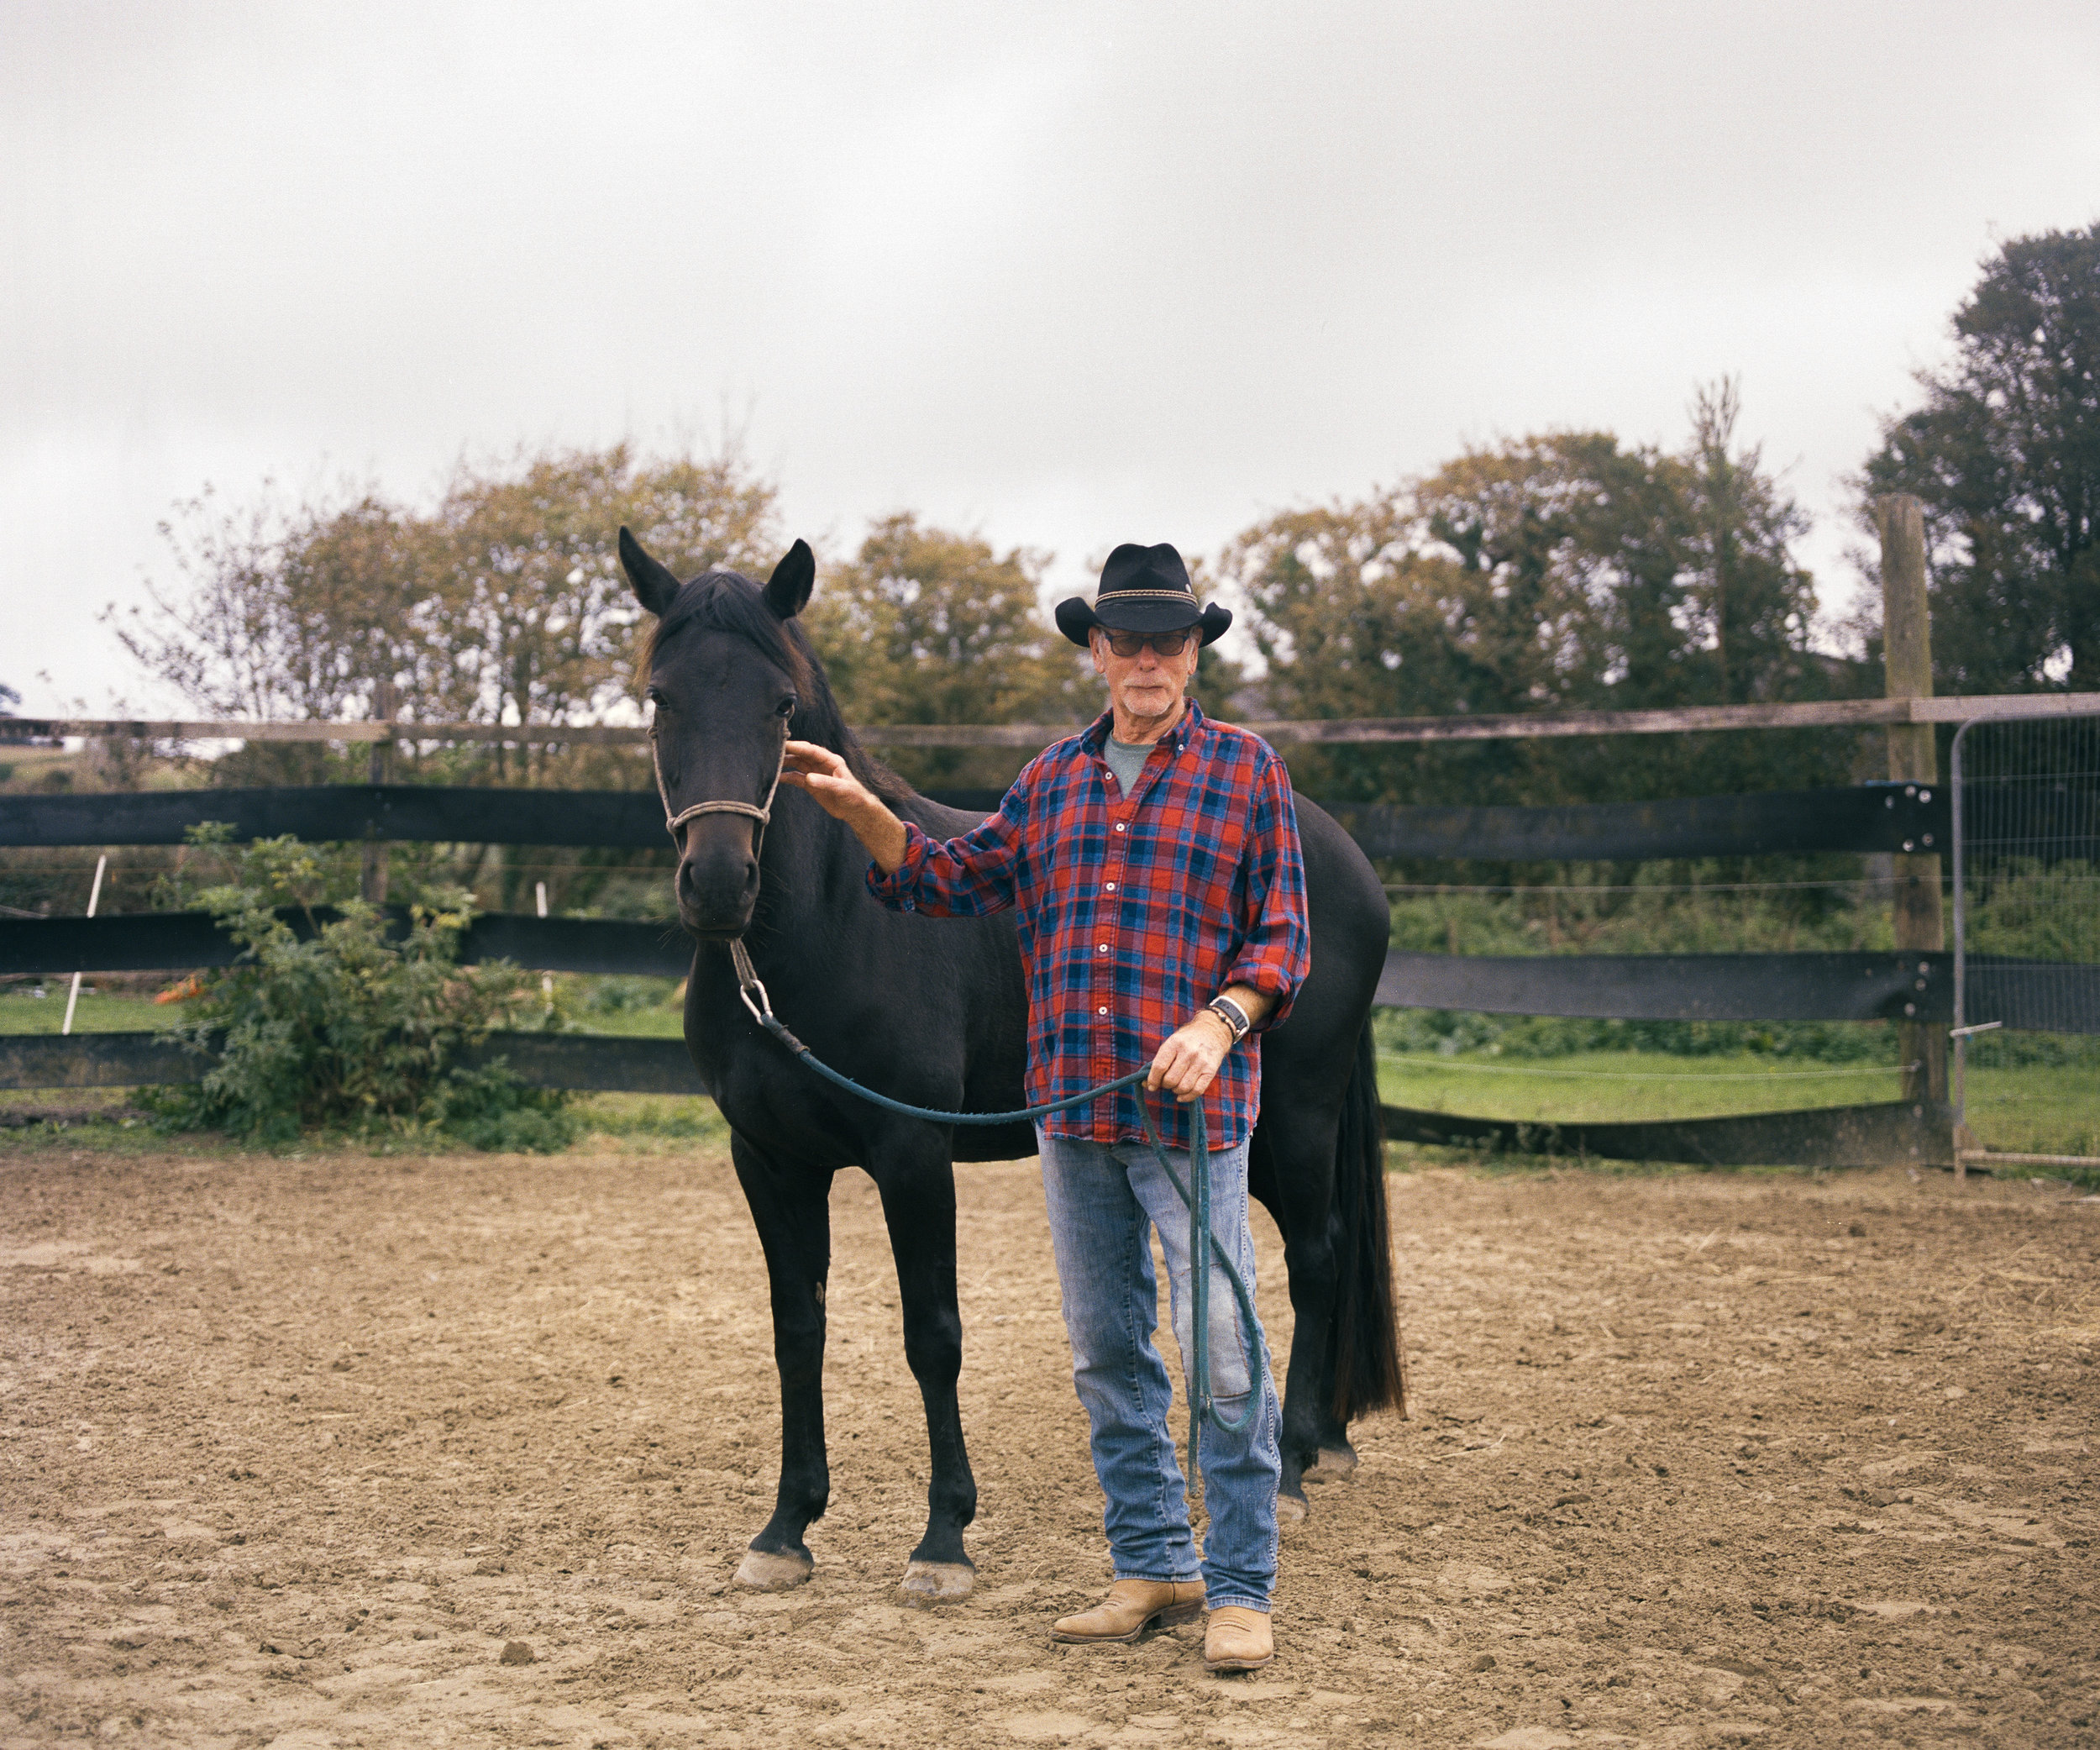 A portrait of western rider Dave Swift, standing next to his horse in his riding ring. Dave first discovered western riding when he was 19 when he Travelled to the U.S to Nevada to work as a ranch hand for a year, gaining a deeper insight into being a working cowboy.